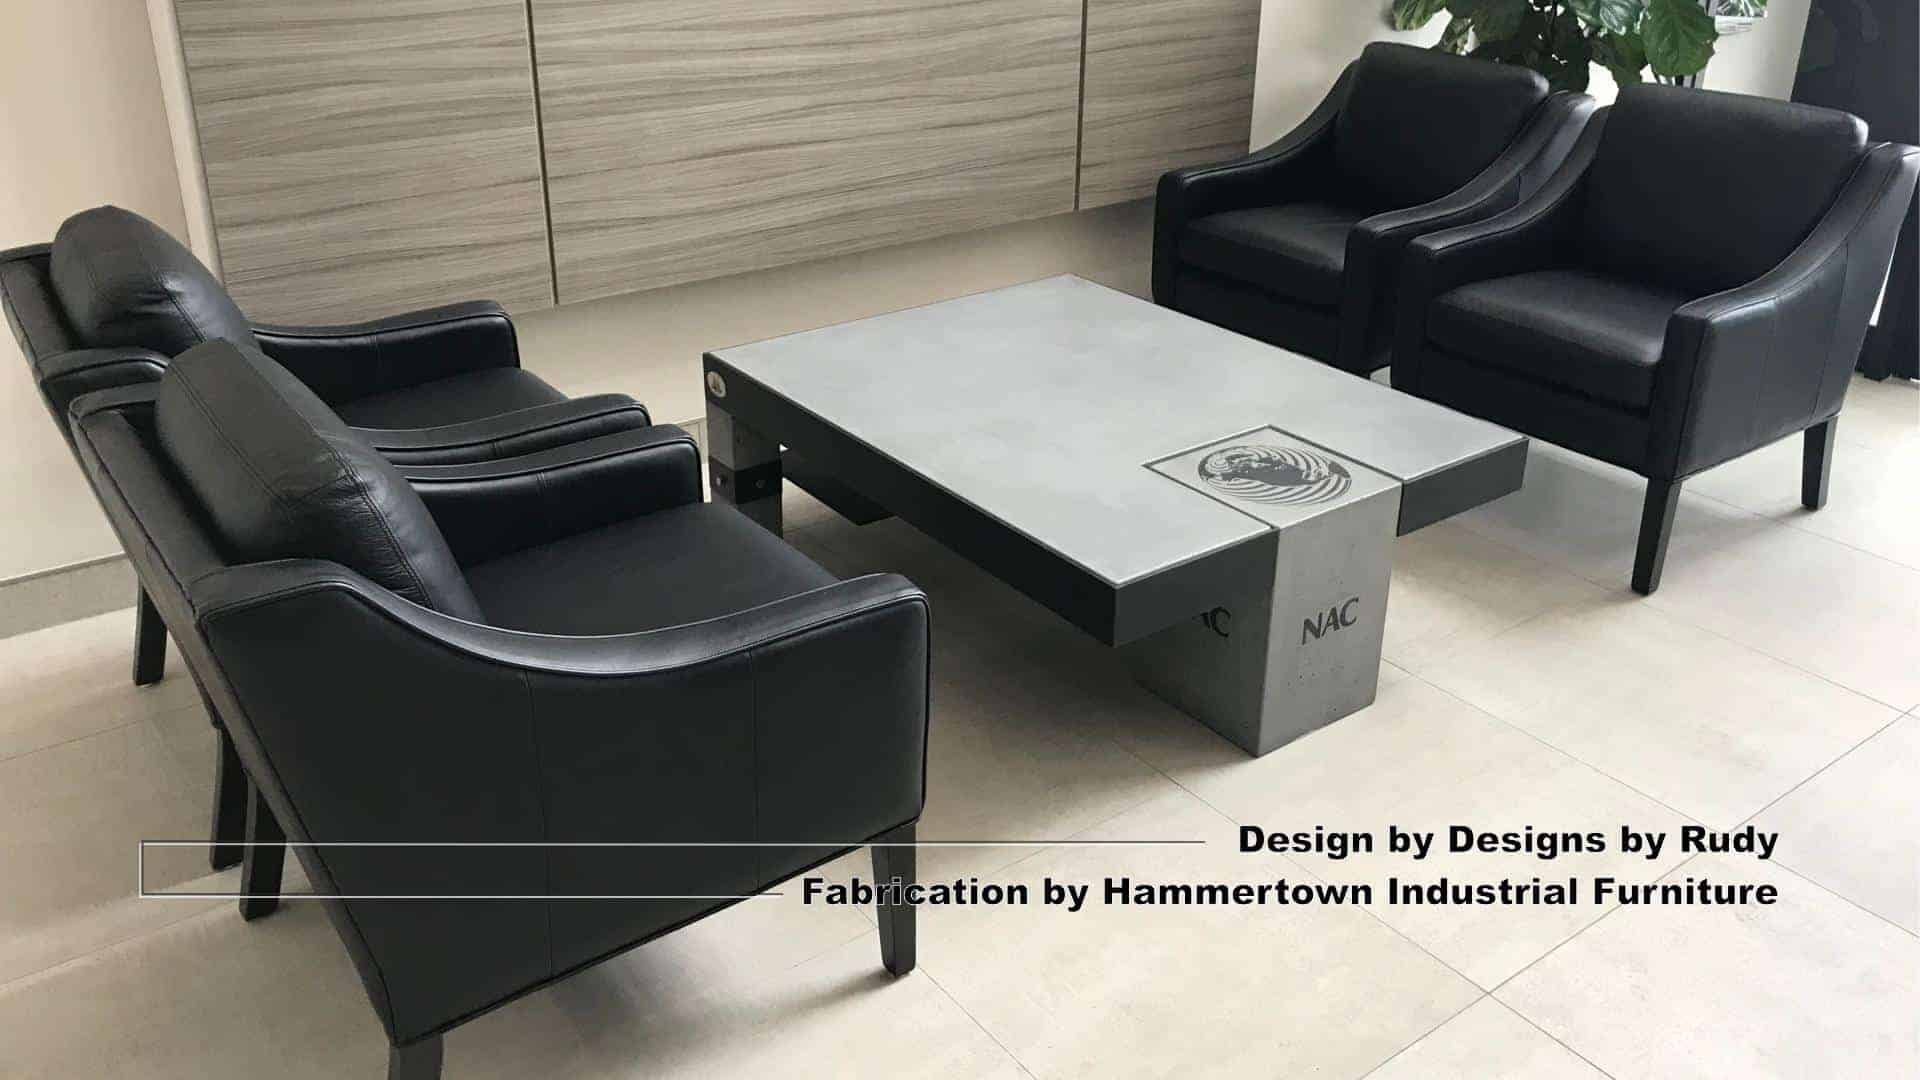 Concrete and steel coffee table for NAC, Designs by Rudy, Hammertown Industrial Furniture, view 1